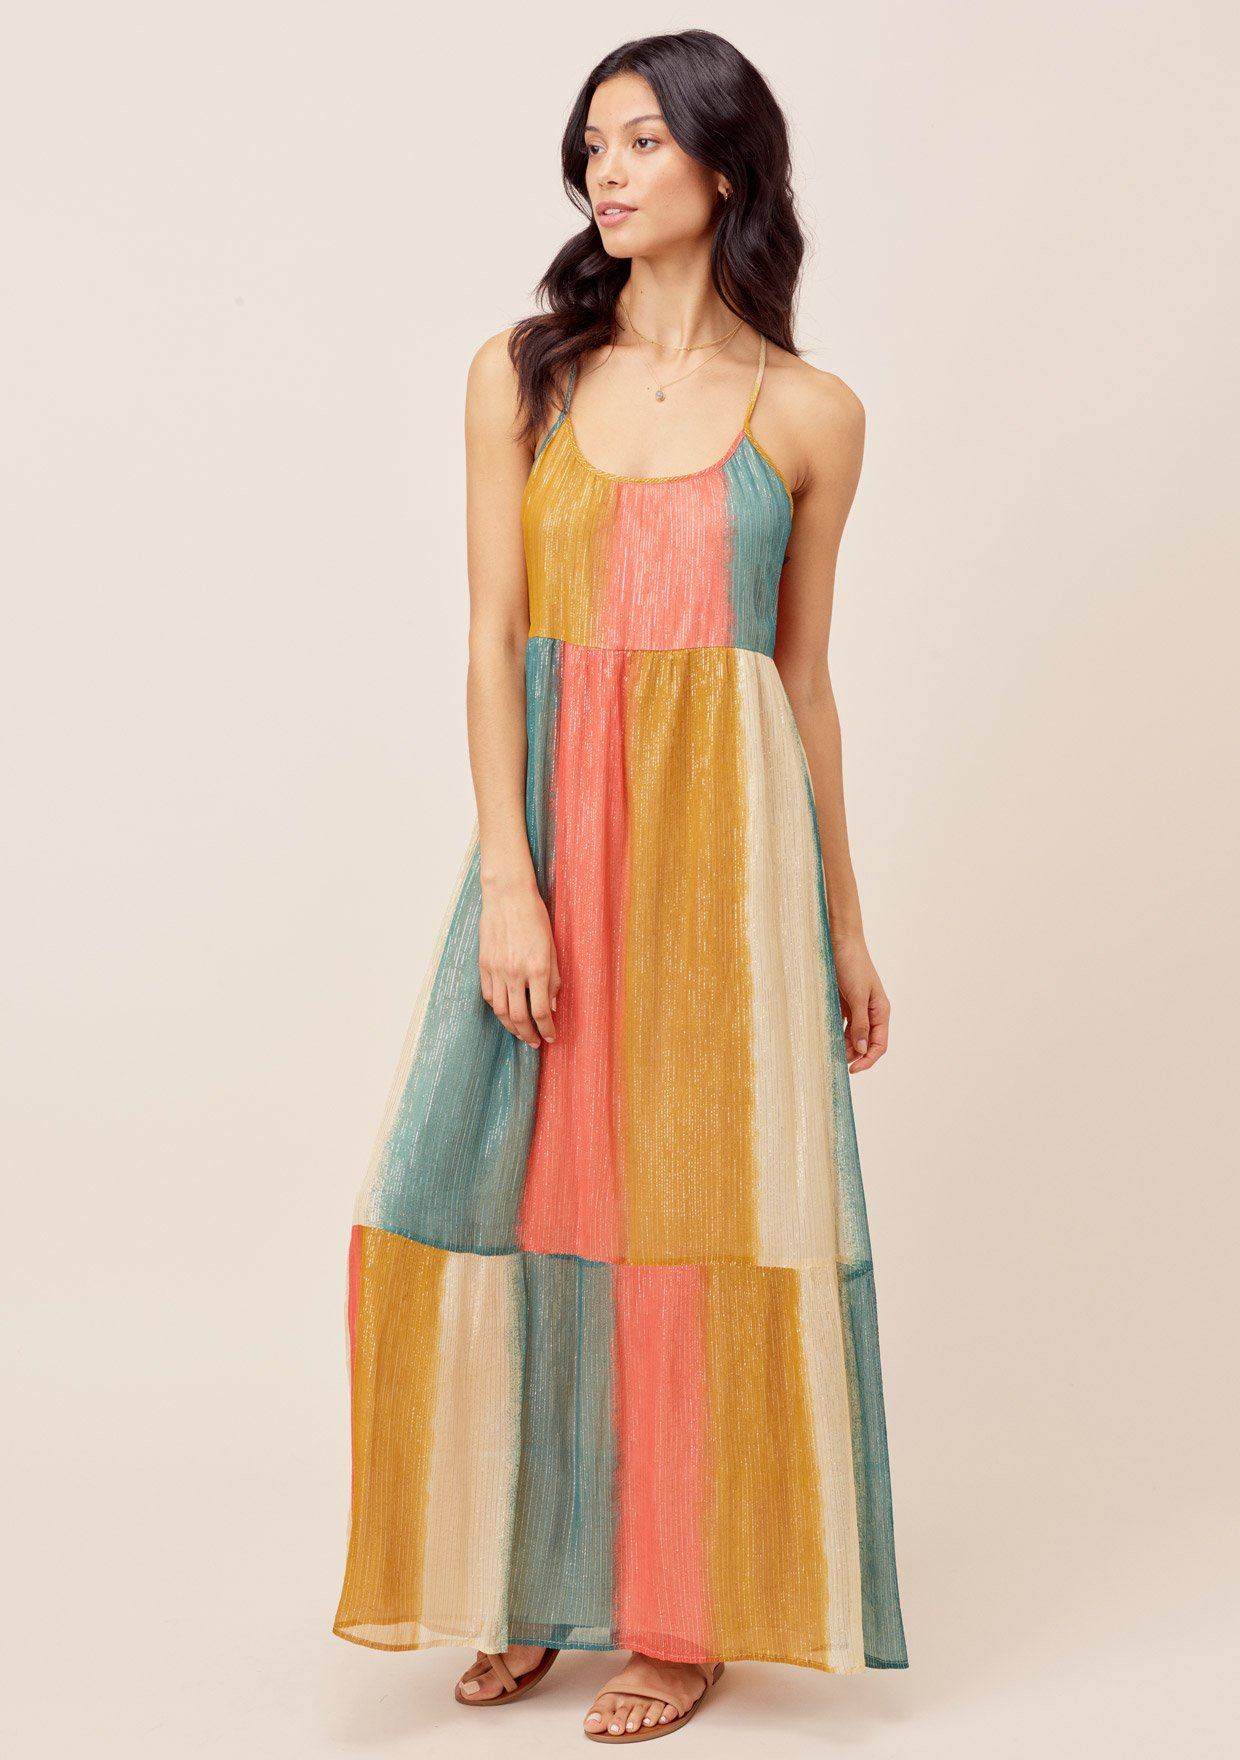 Rainbow Stripe Metallic Maxi Dress Lovestitch